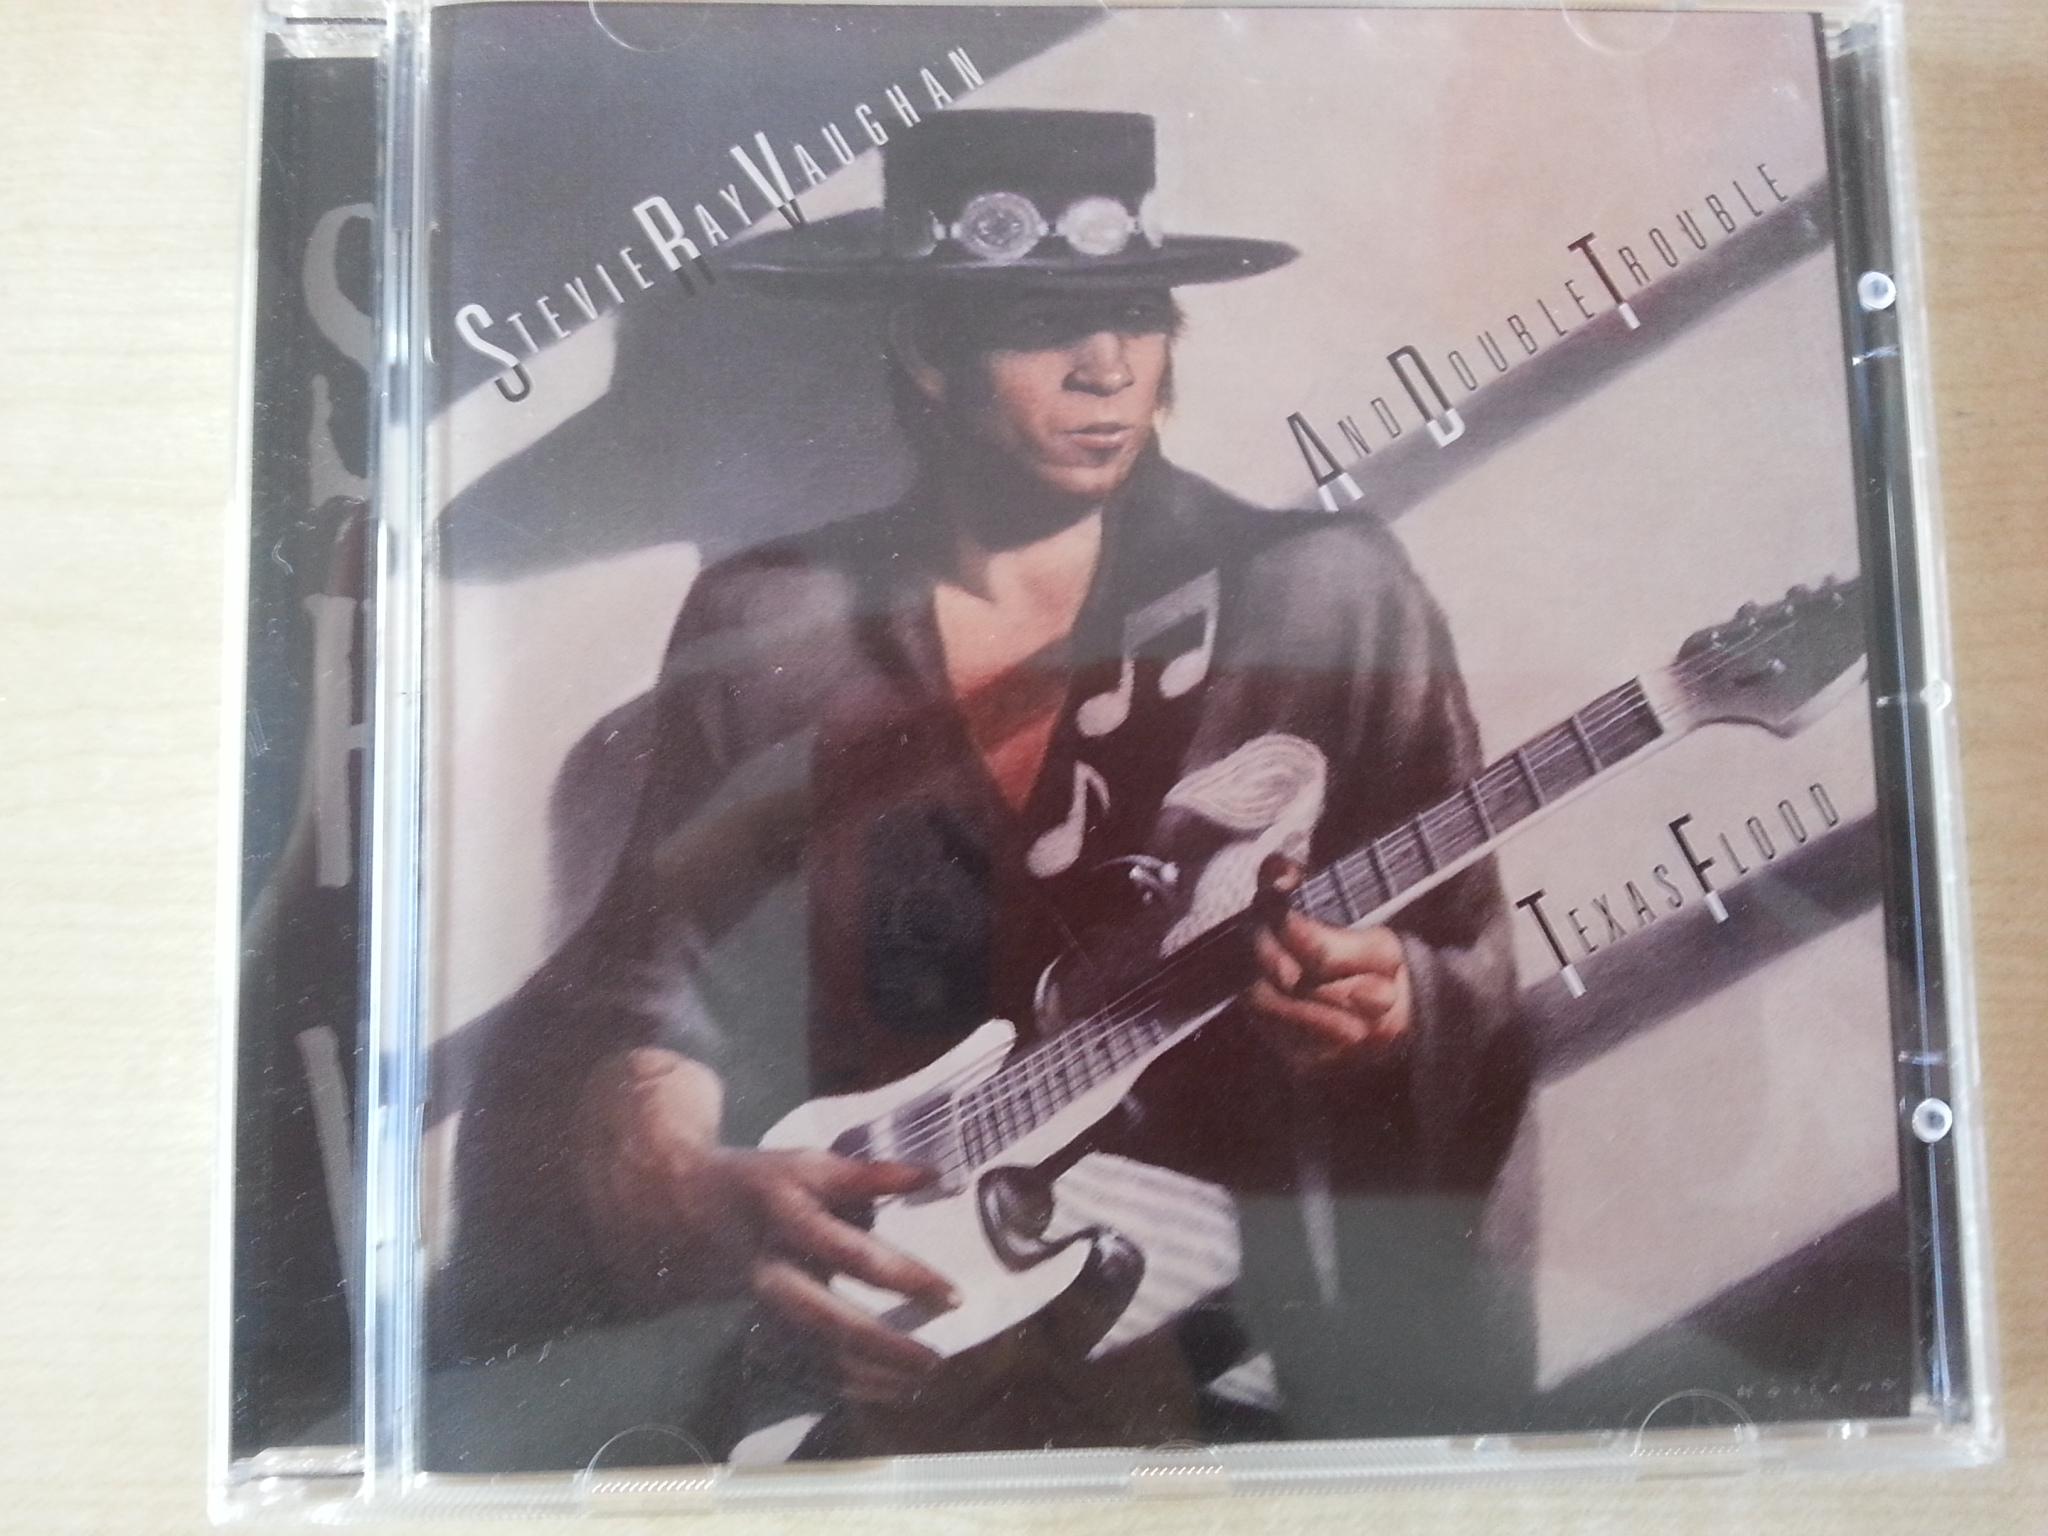 CD: Stevie Ray Vaughan- and double trouble  kostenlos